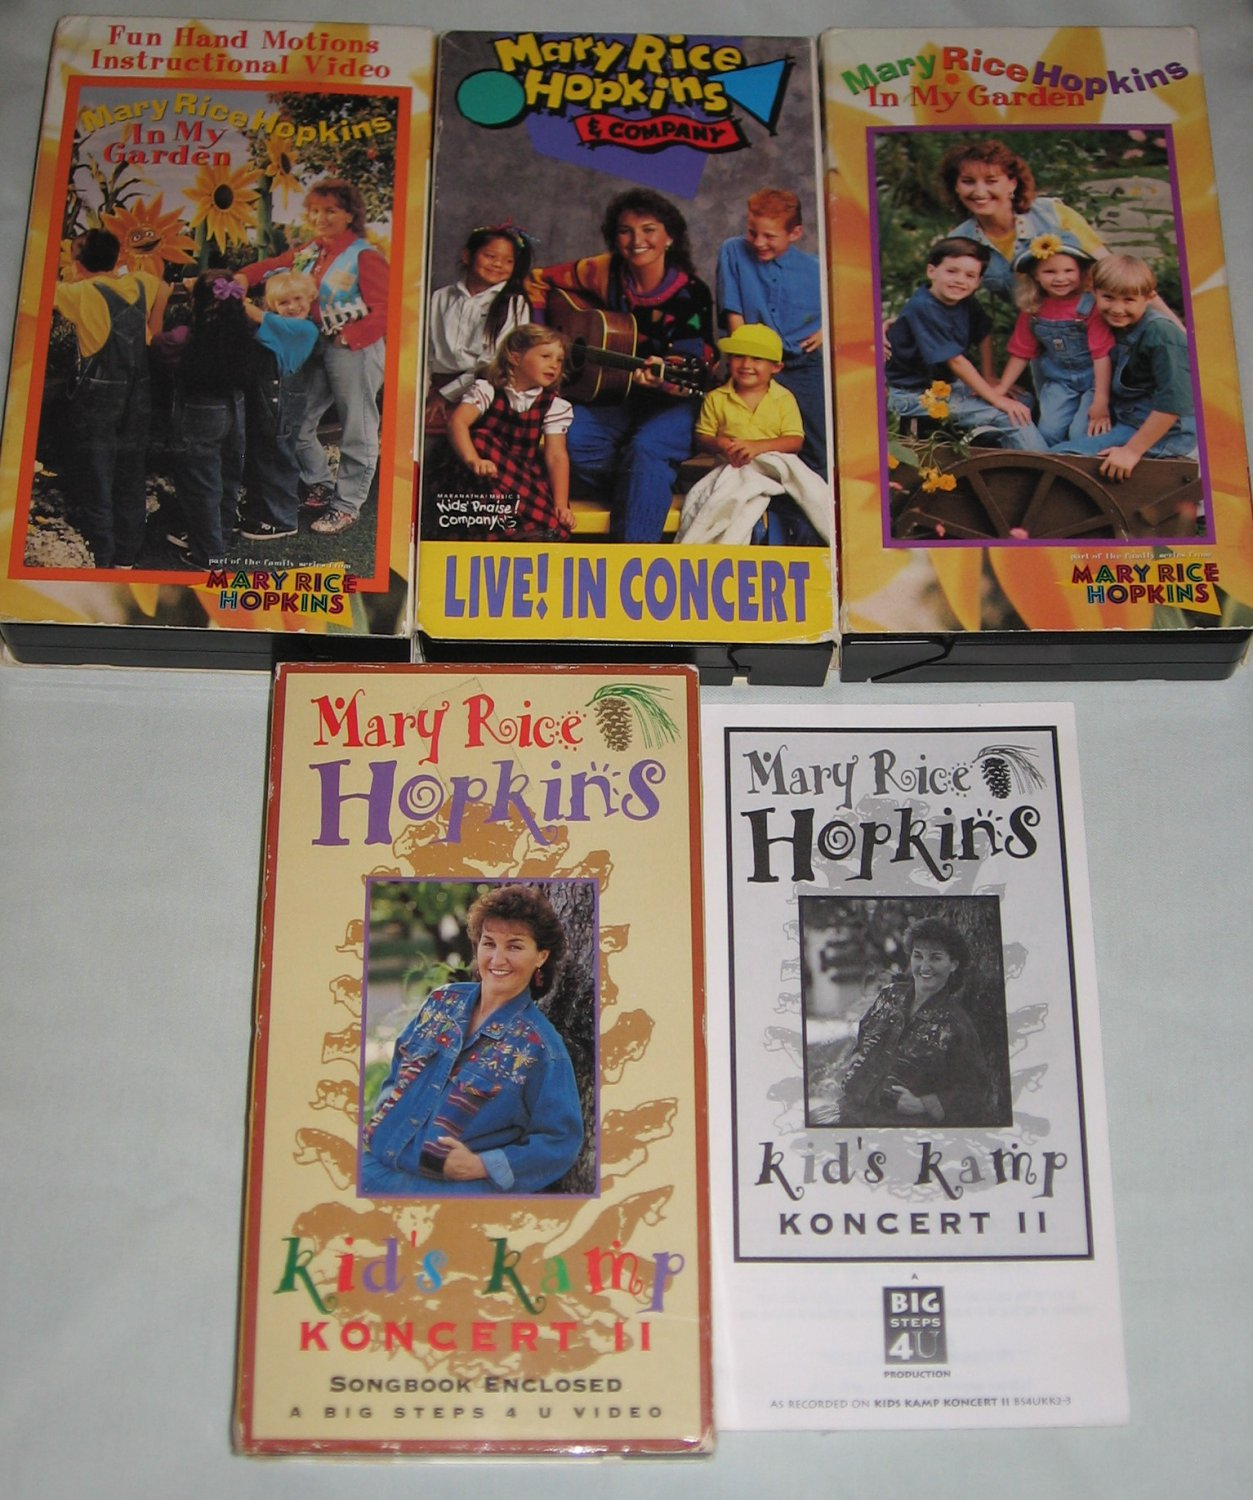 Lot of 4 VHS Mary Rice Hopkins In My Garden, Kids Kamp Koncert + Songbook Fun Hand Motions ++